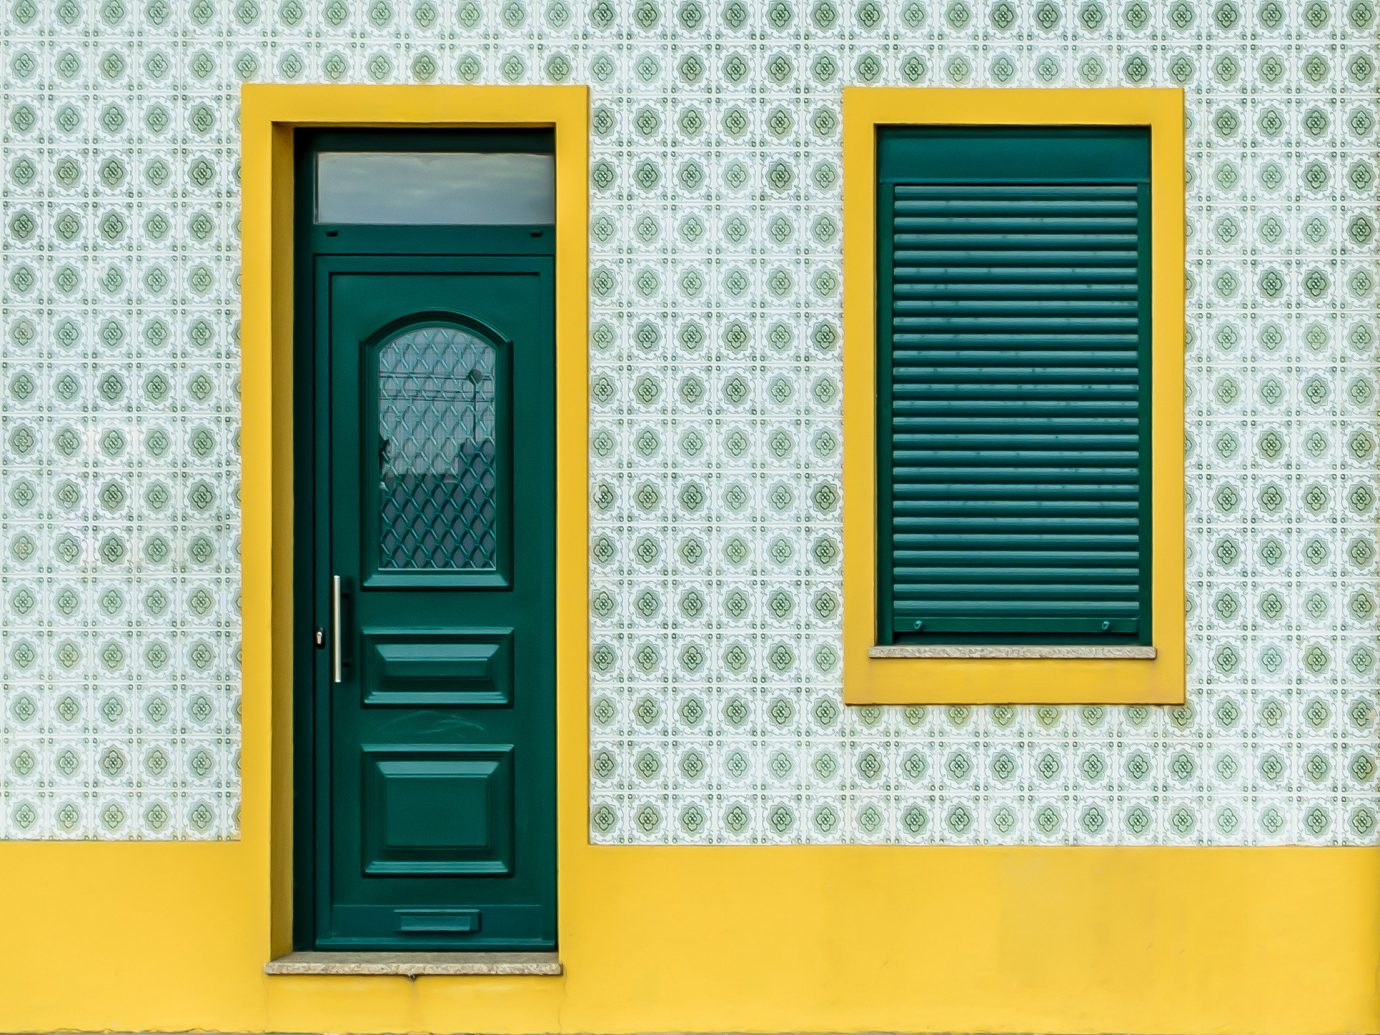 Offbeat yellow color door product picture frame window interior design window covering Design colored